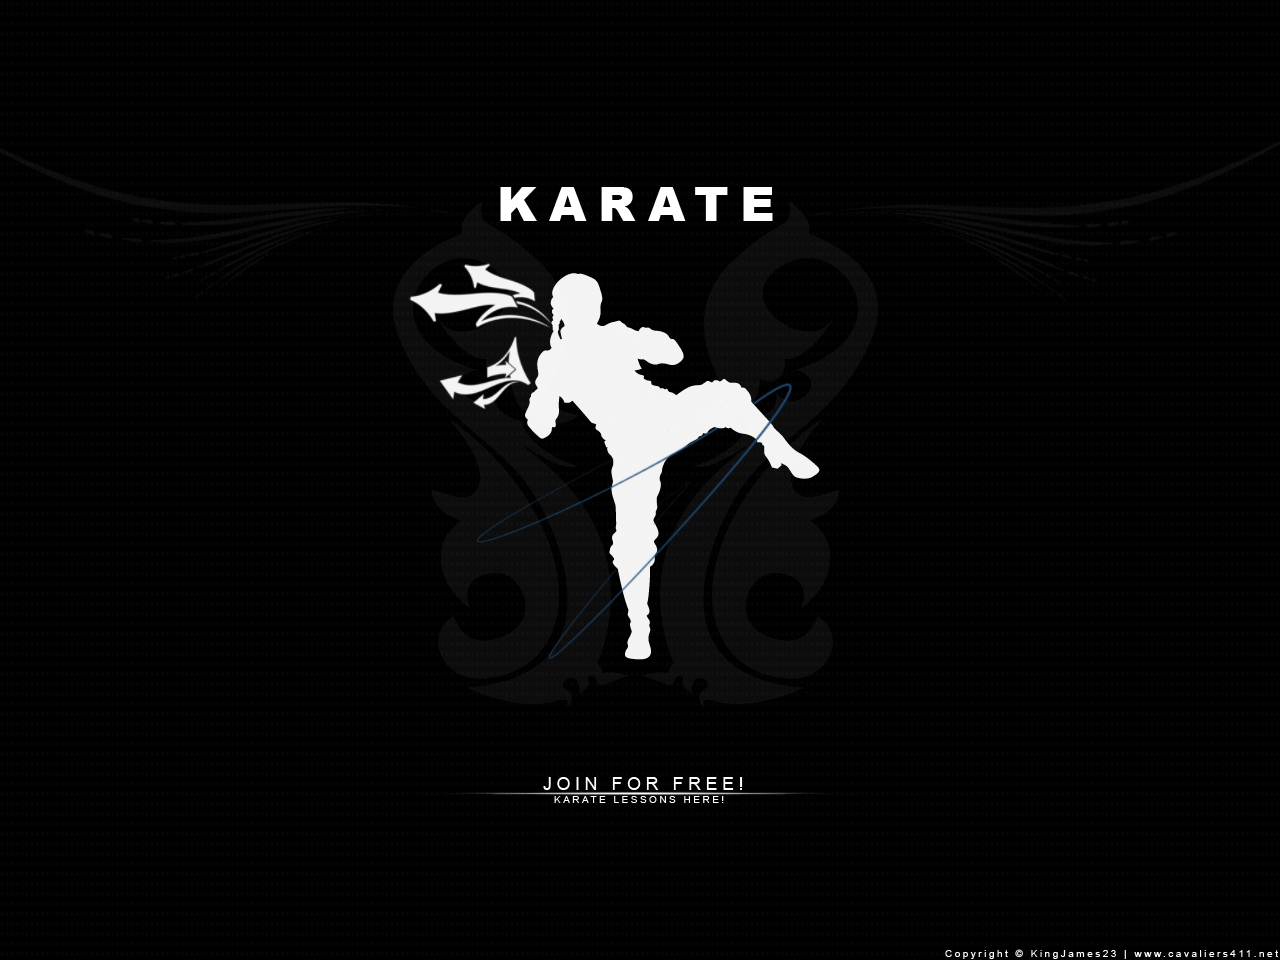 Free Download Karate Wallpapers 1280x960 For Your Desktop